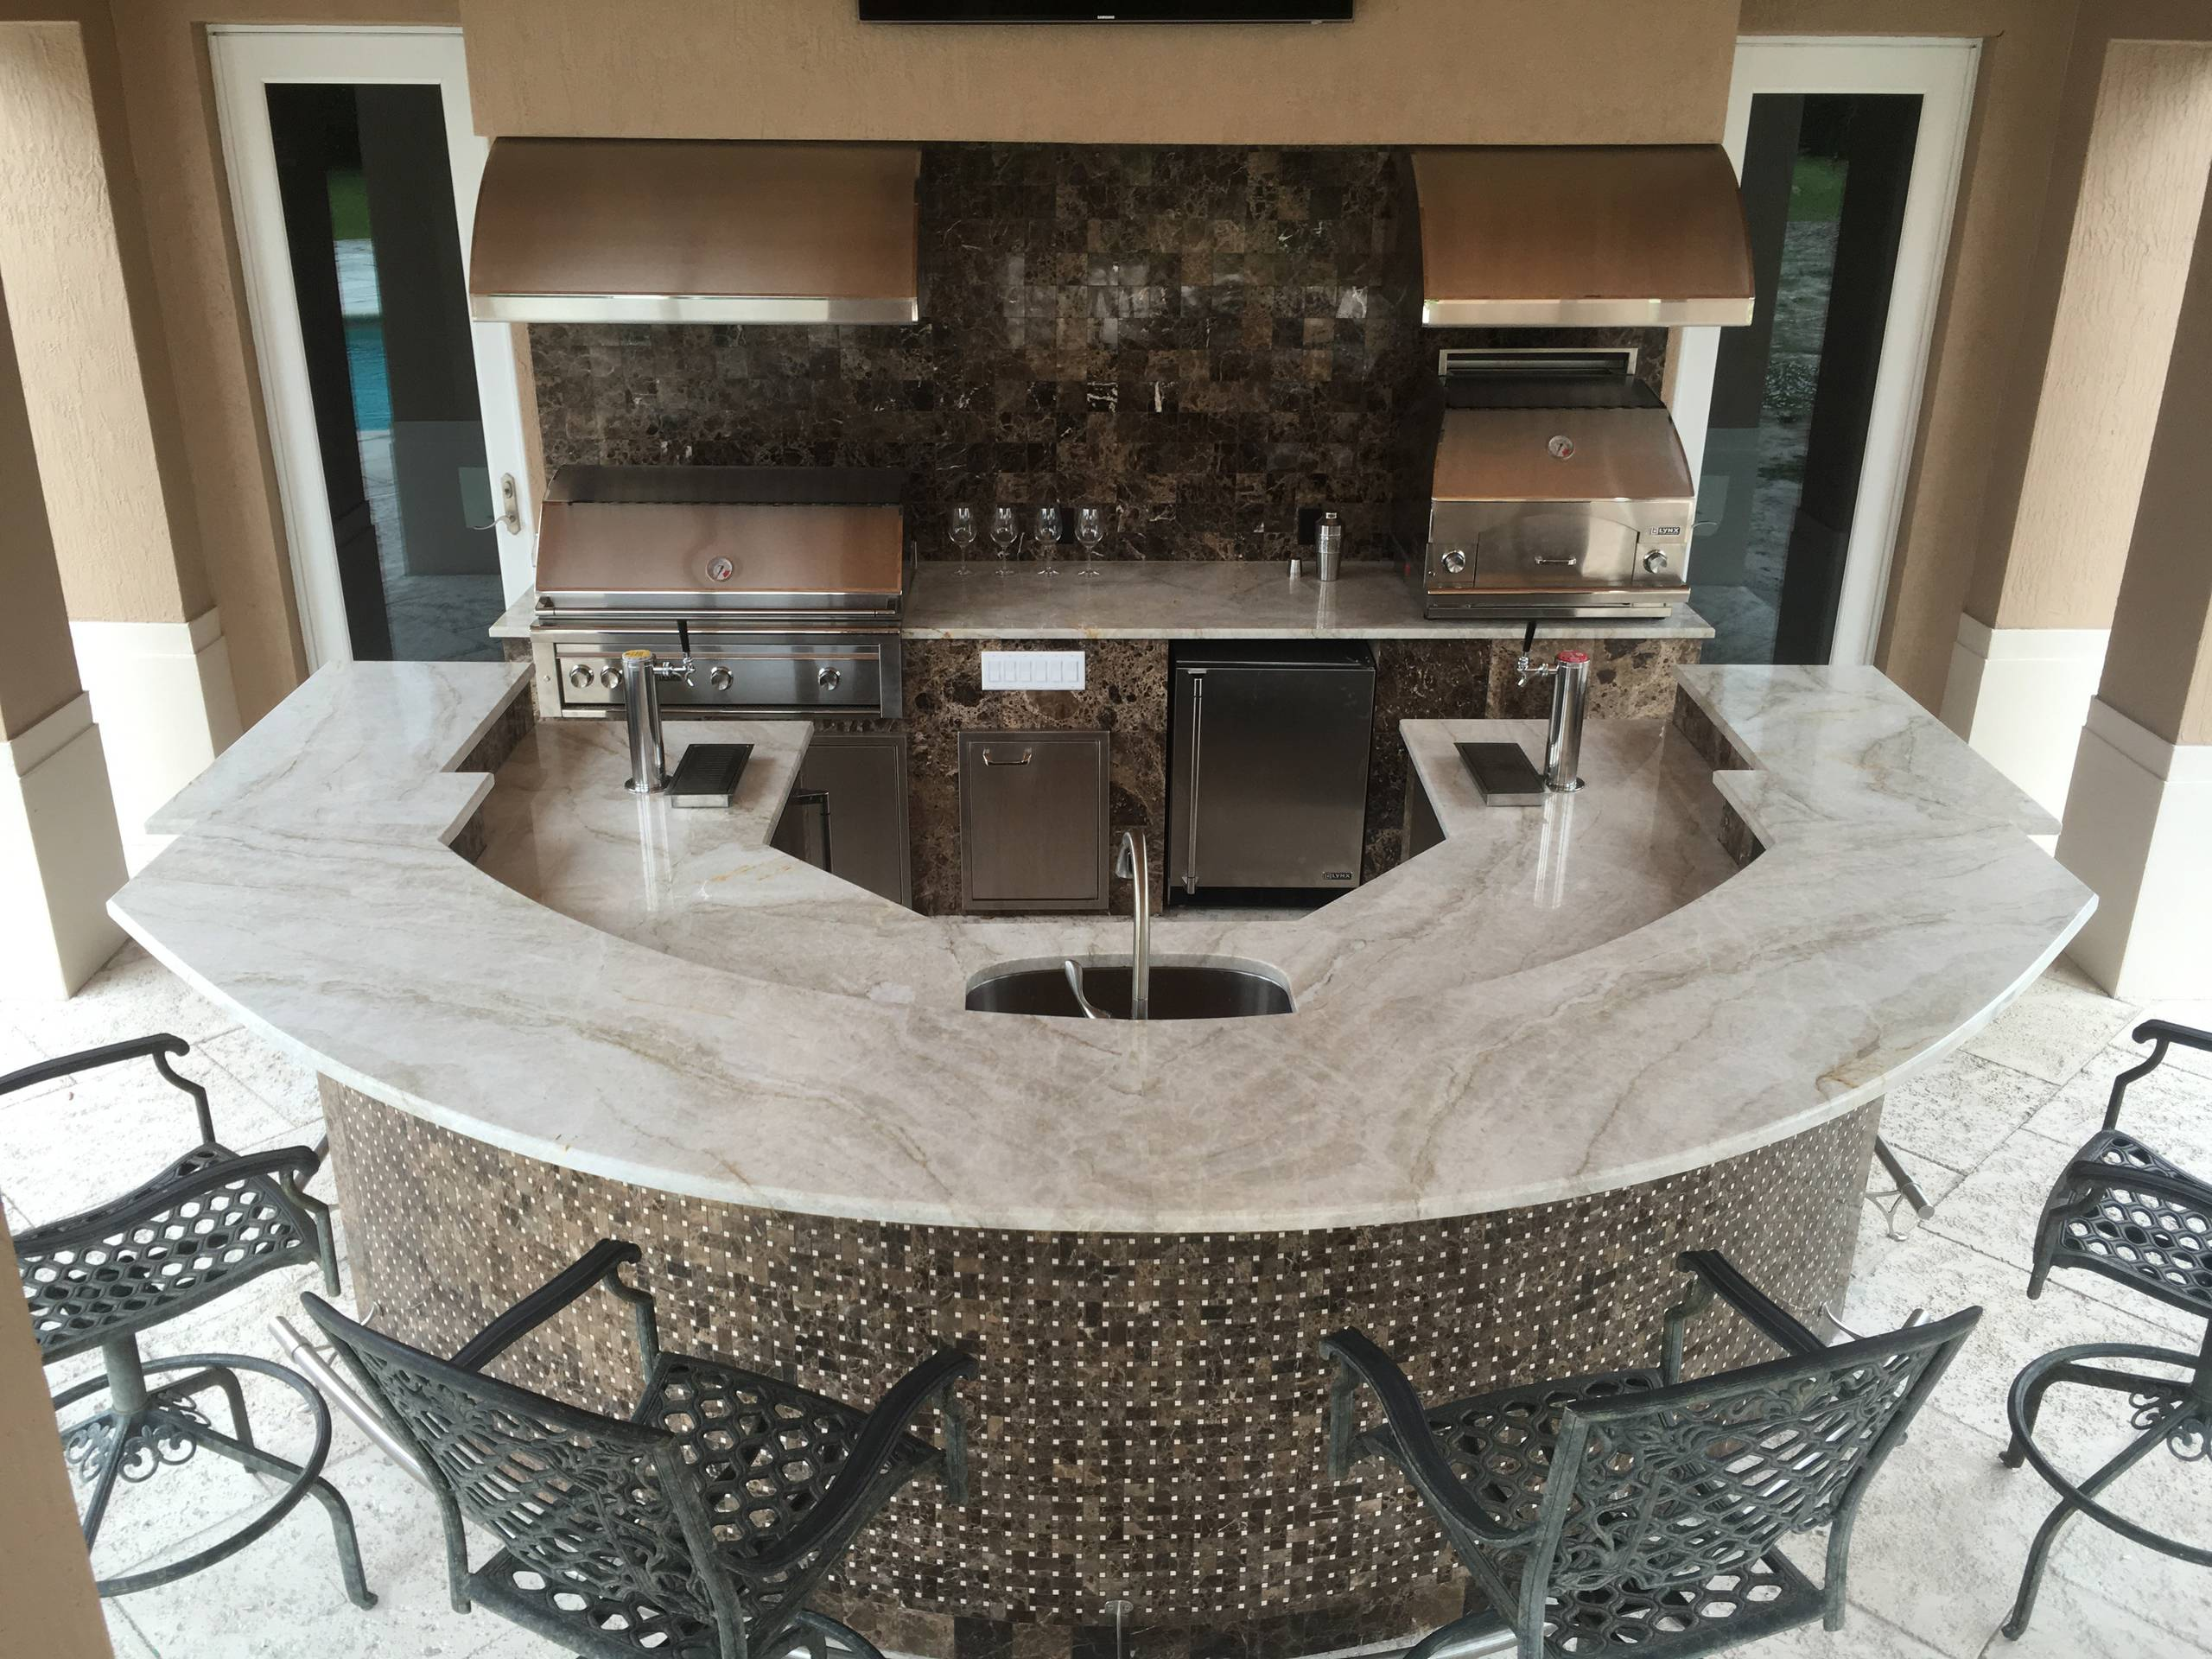 Summer Kitchen - Boca Raton